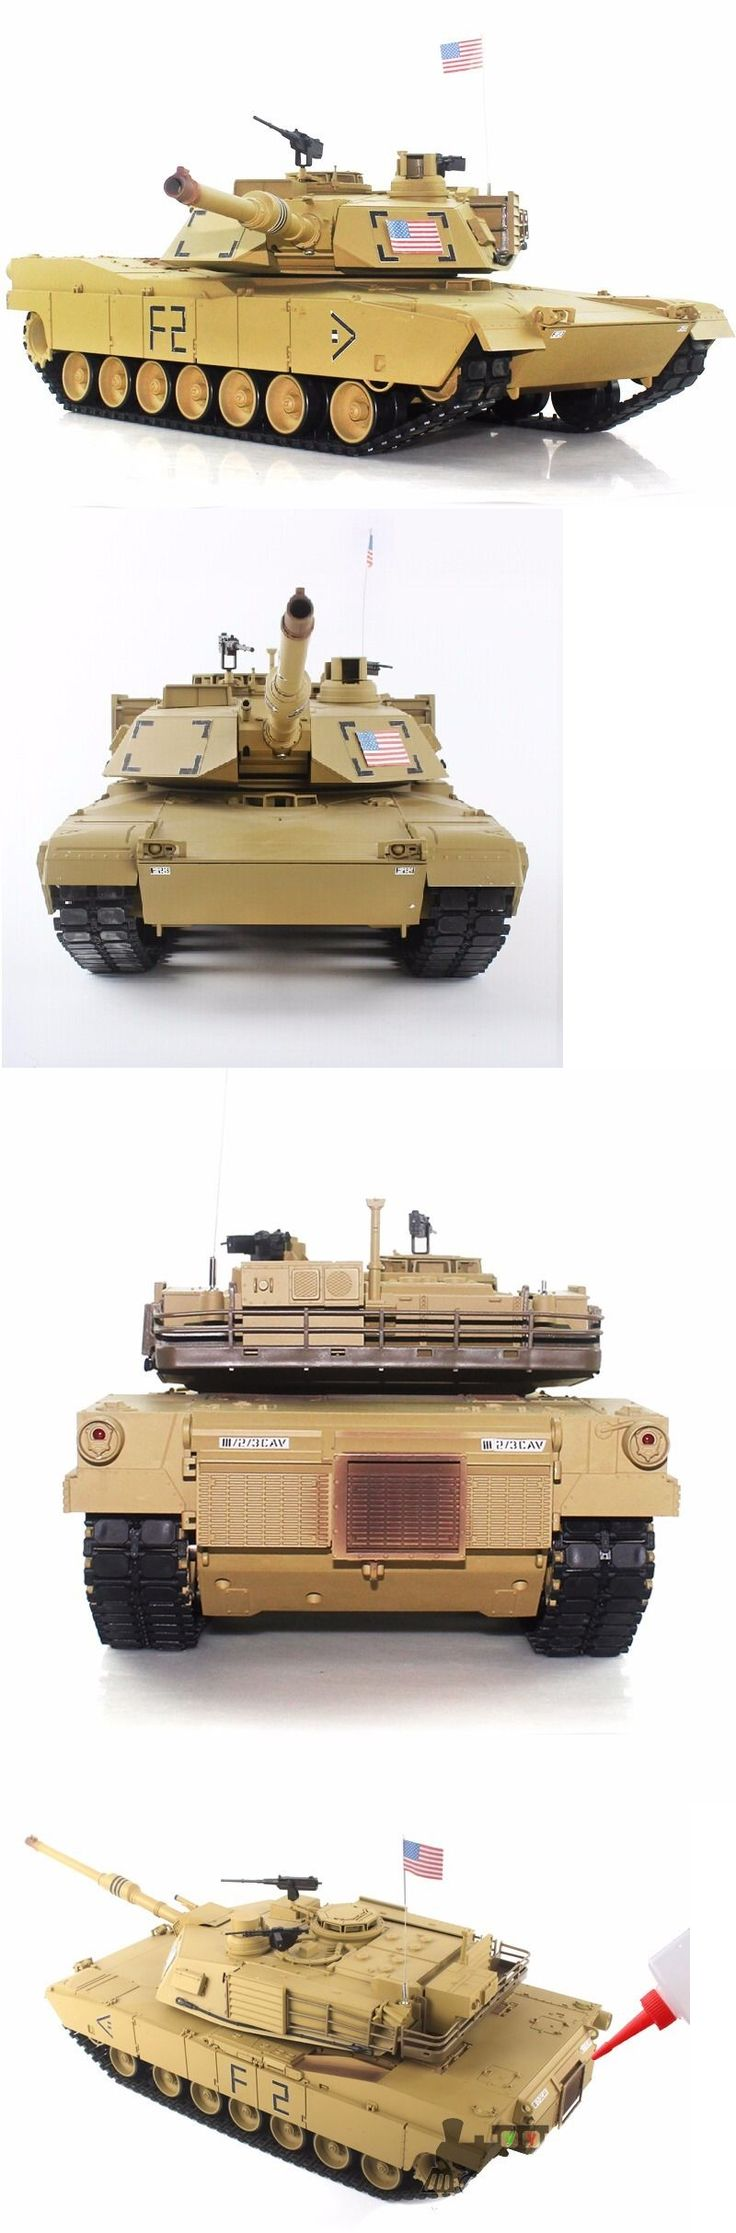 Tanks and Military Vehicles 45986: 2.4Ghz 1 16 Us M1a2 Abrams Rc Tank Upgrade Super Metal W Smoke And Sound Rtr -> BUY IT NOW ONLY: $289.99 on eBay!